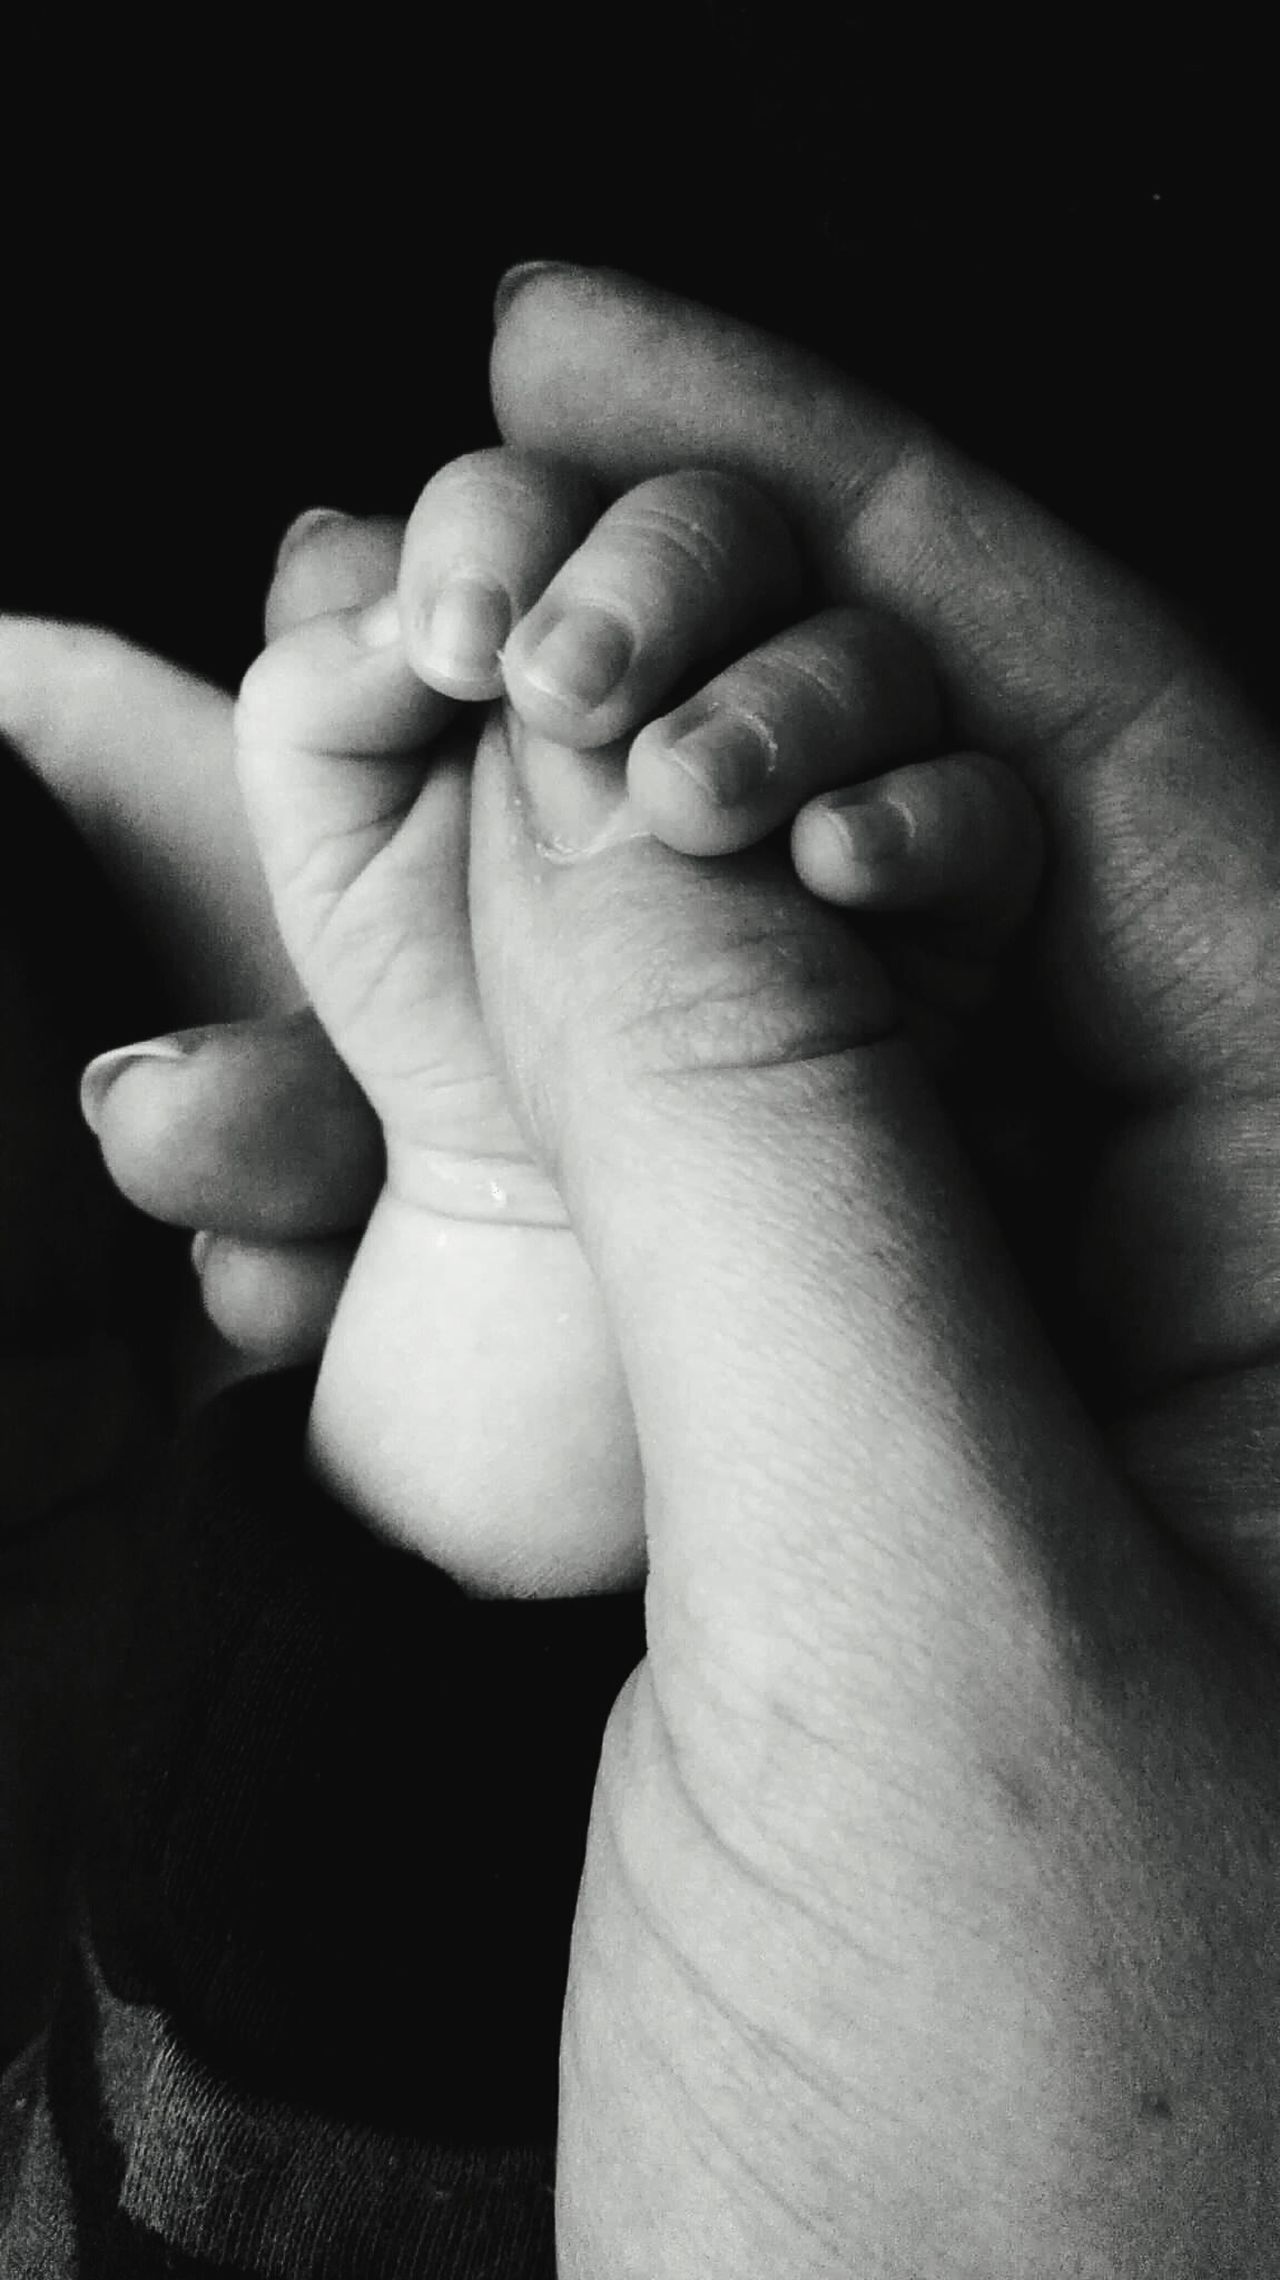 Human Hand Newborn Real People People Momandbaby Momandson Love Care Mom Son Focus On Foreground Beauty Black Indoors  Fingers Black & White Photography